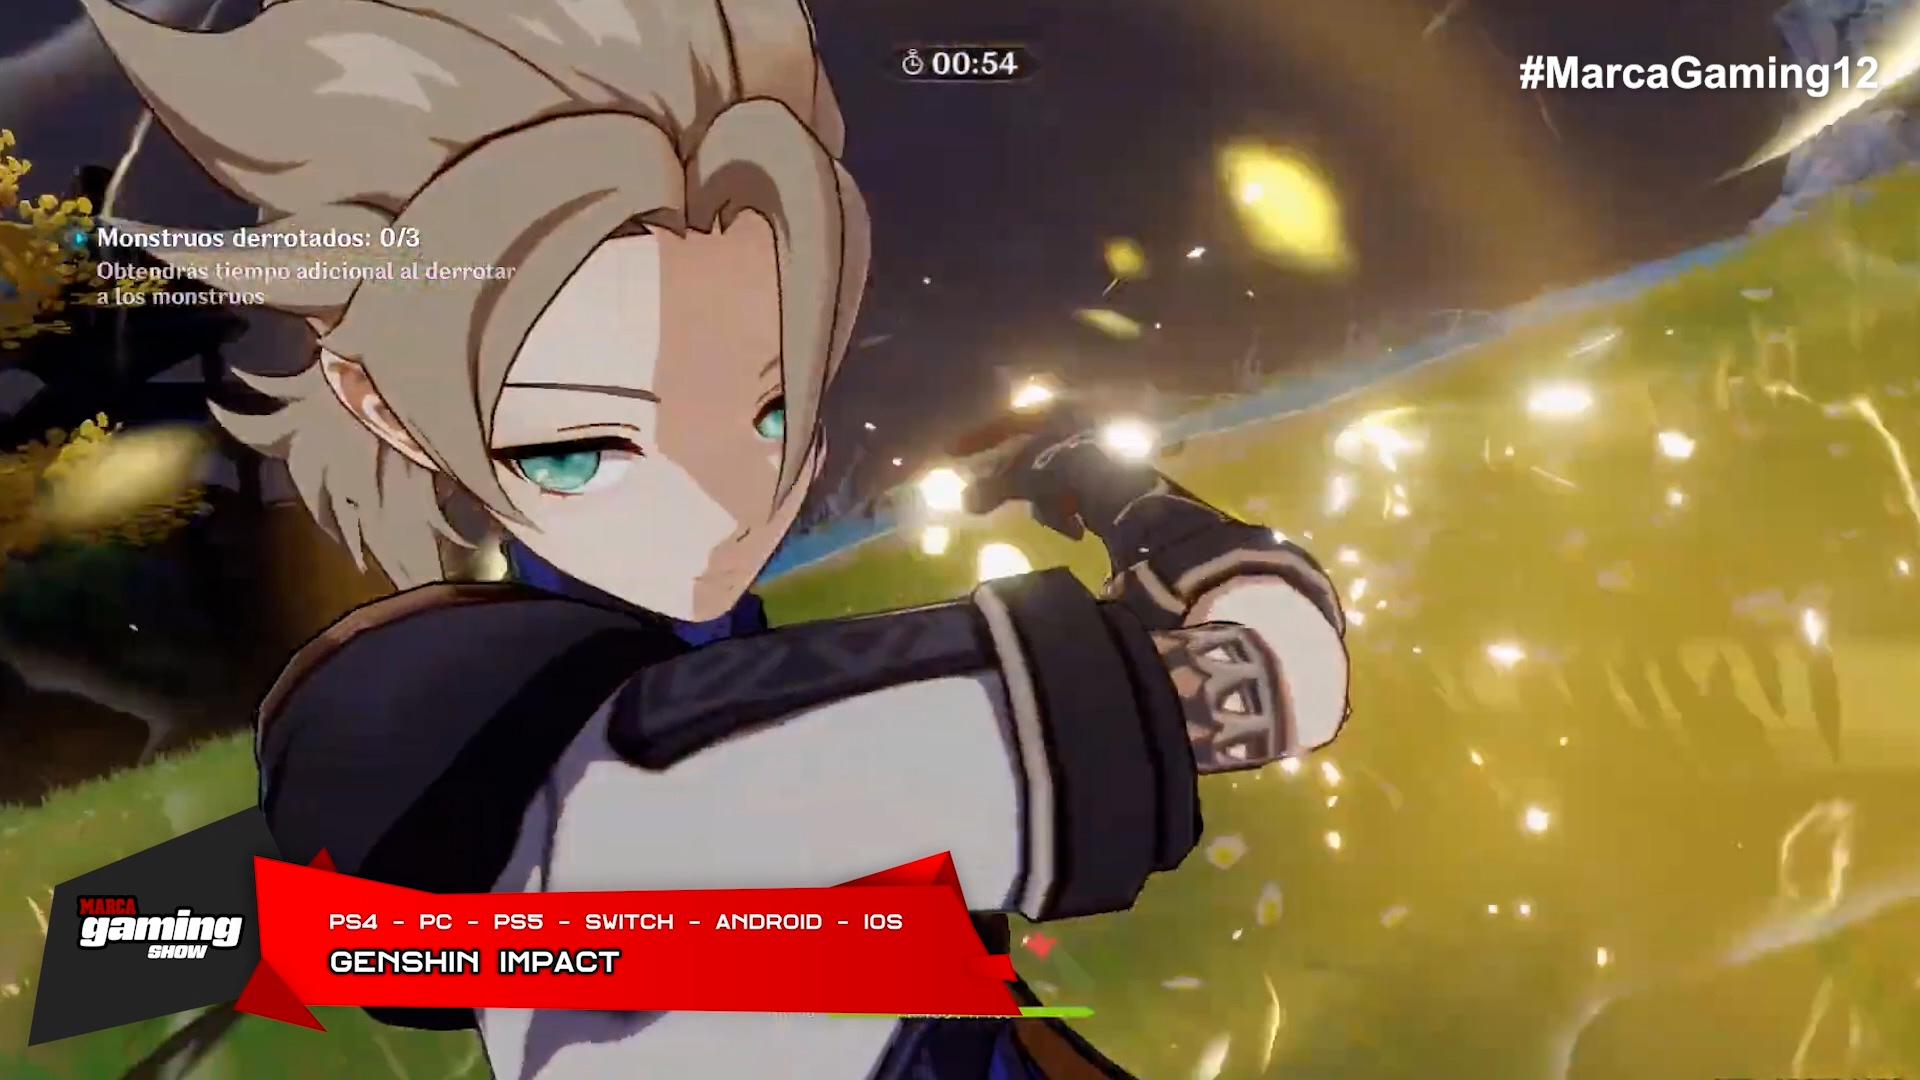 Genshin Impact (PS4 - PC - SWITCH - PS5 - ANDROID - IOS)